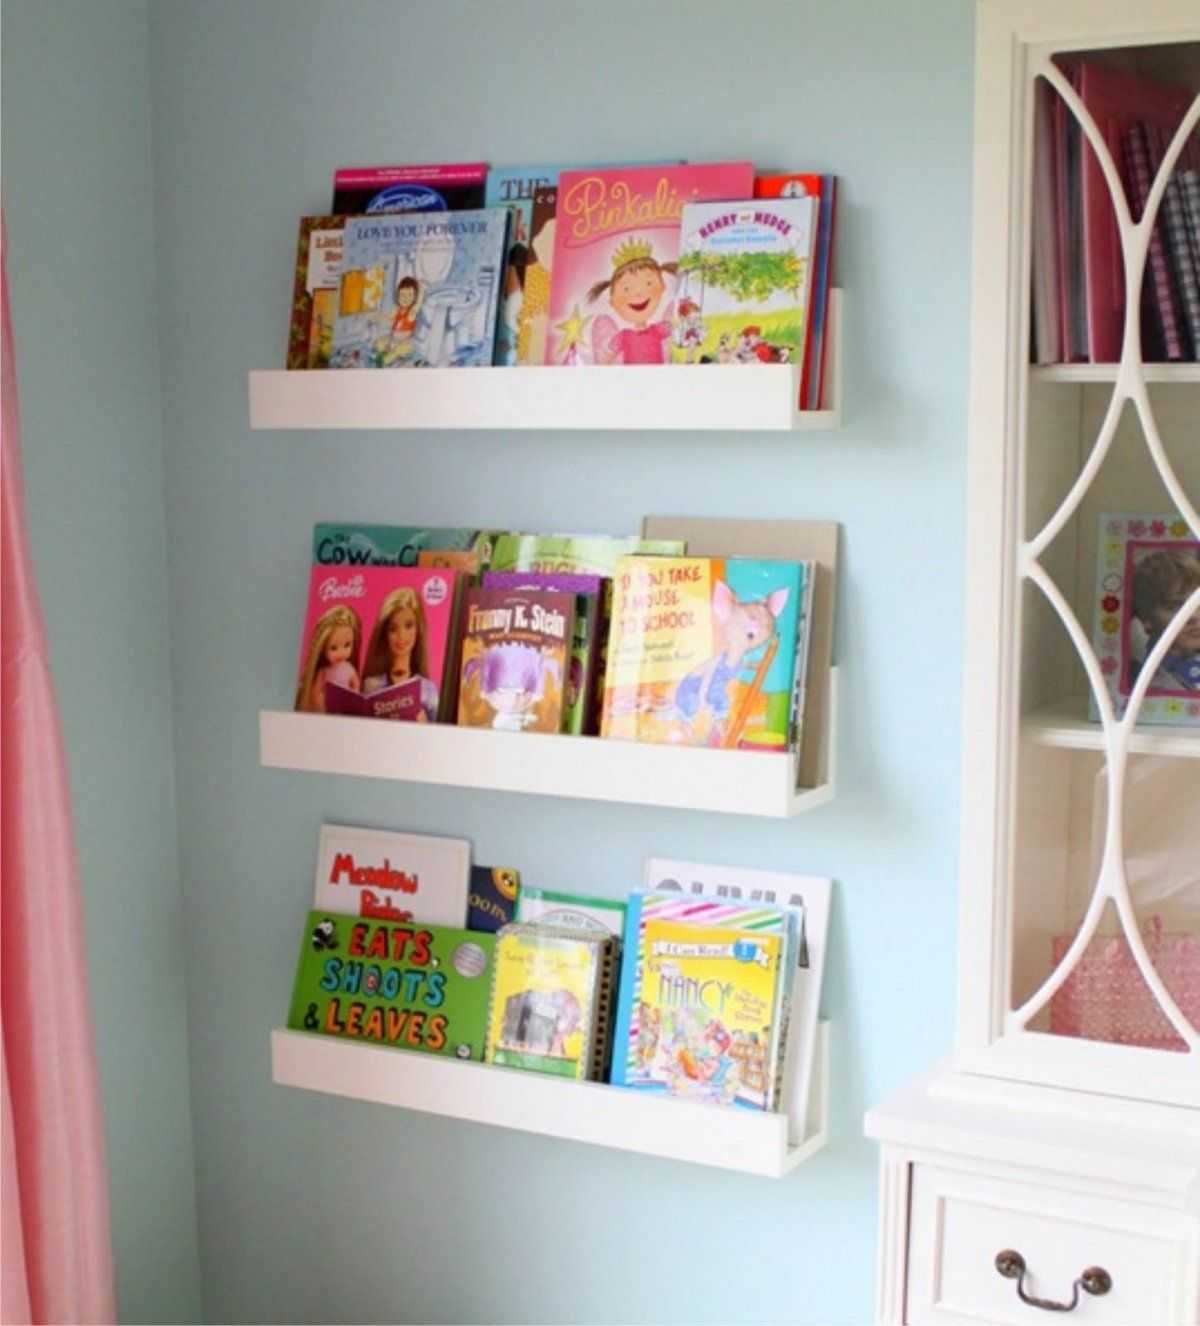 Diy White Minimalist Wall Mounted Book Shelves For Little Girls Bedroom Decoration Decoration Qdlake Bookshelves Diy Bookshelves Kids Kids Room Bookshelves